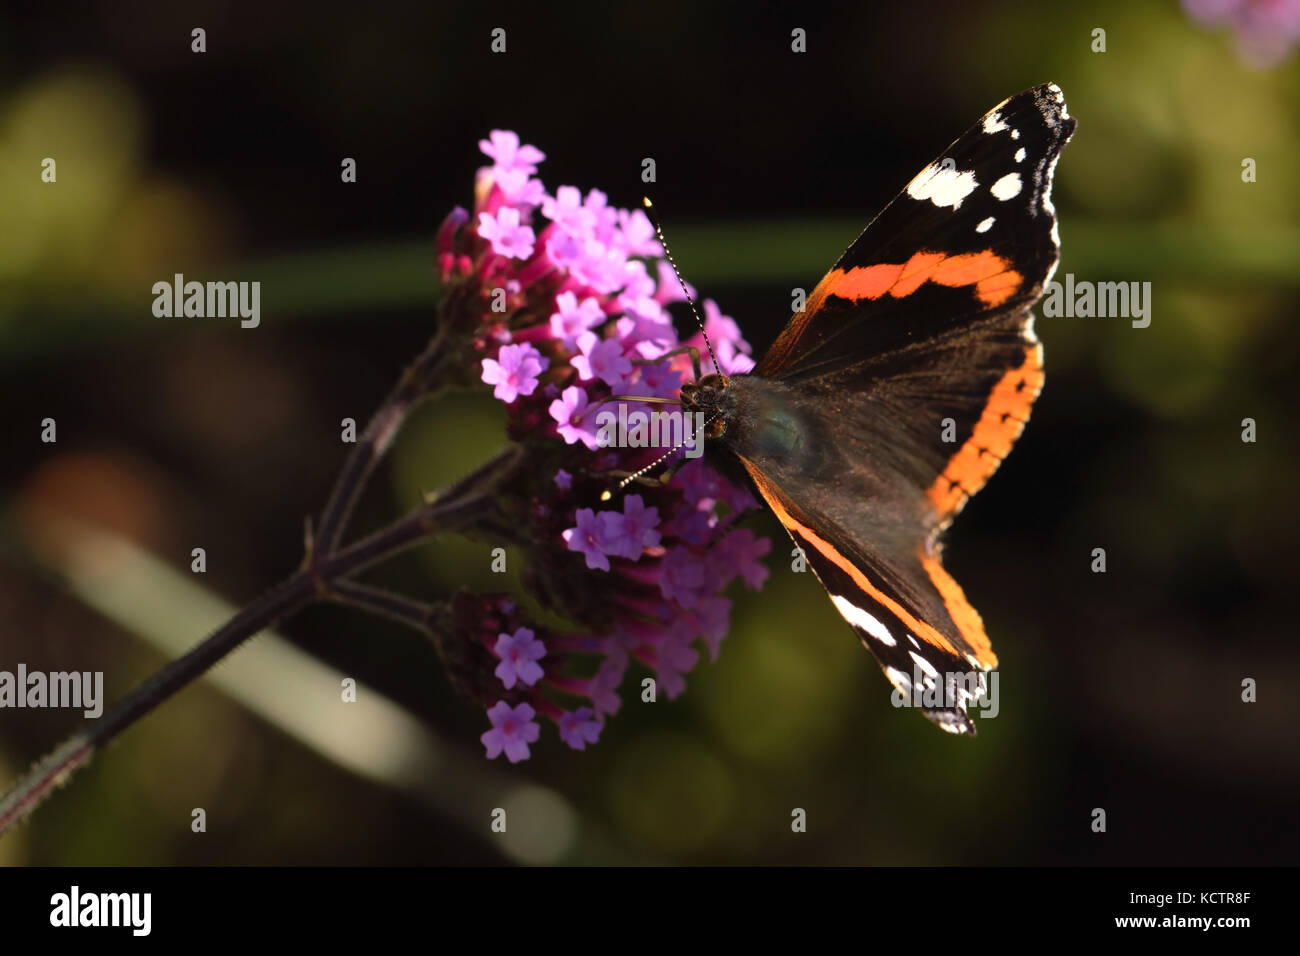 Red Admiral Butterfly feeding on Verbena bonariensis  Flower in The Valley Gardens,Harrogate,North Yorkshire,England,UK - Stock Image